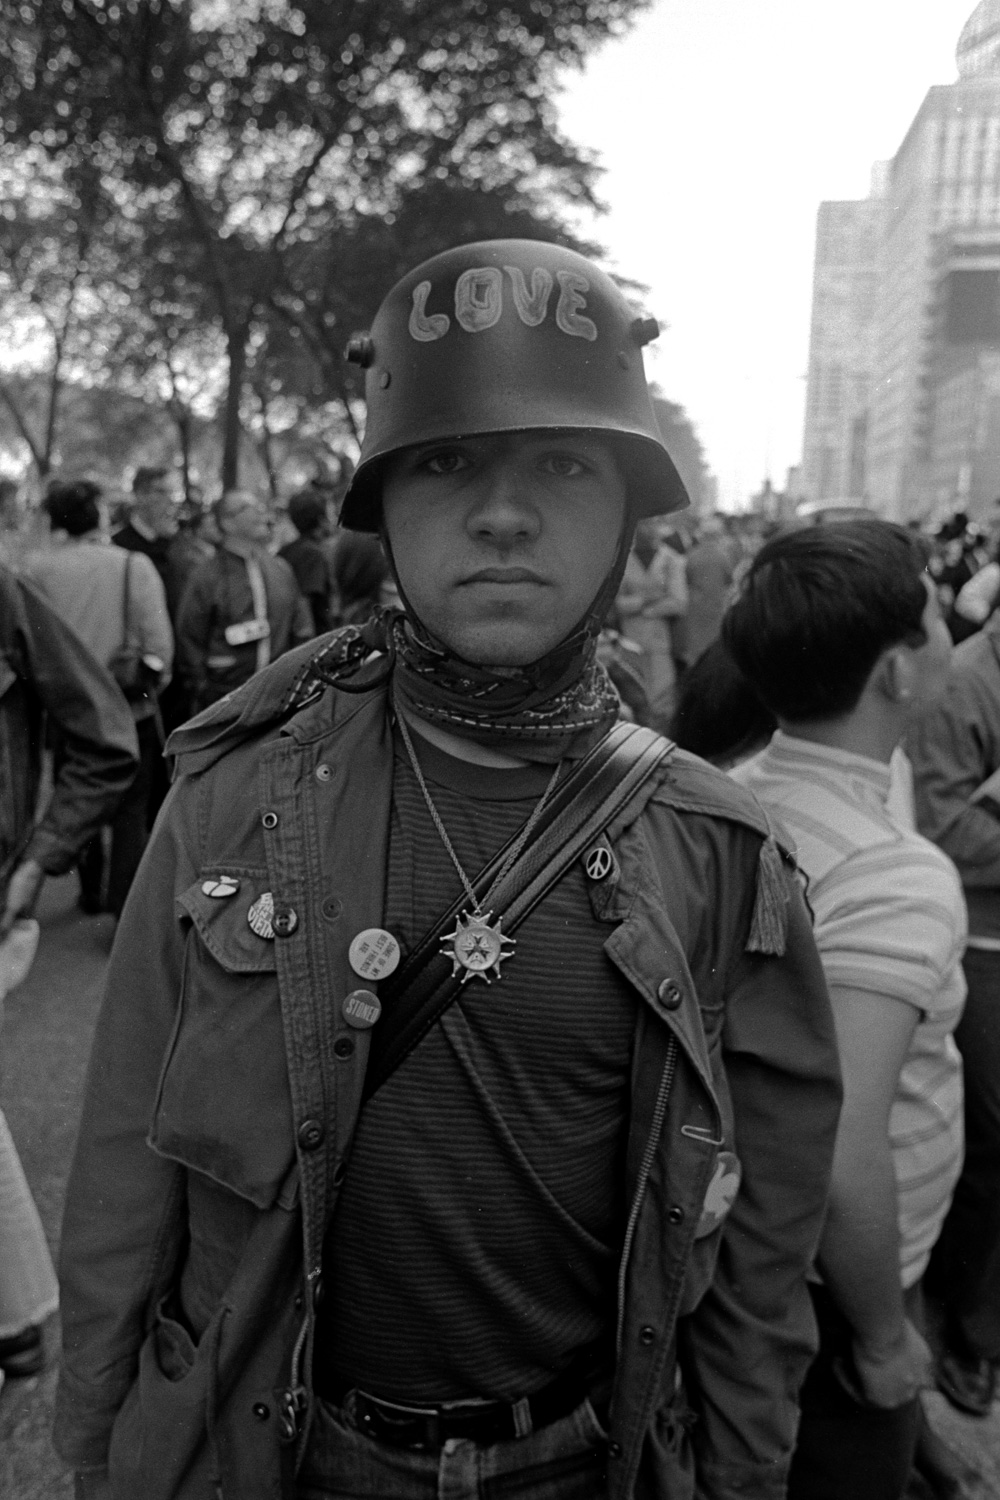 Tough love in 1968 meant dressing for combat, but showing your adversaries you were part of the love army.